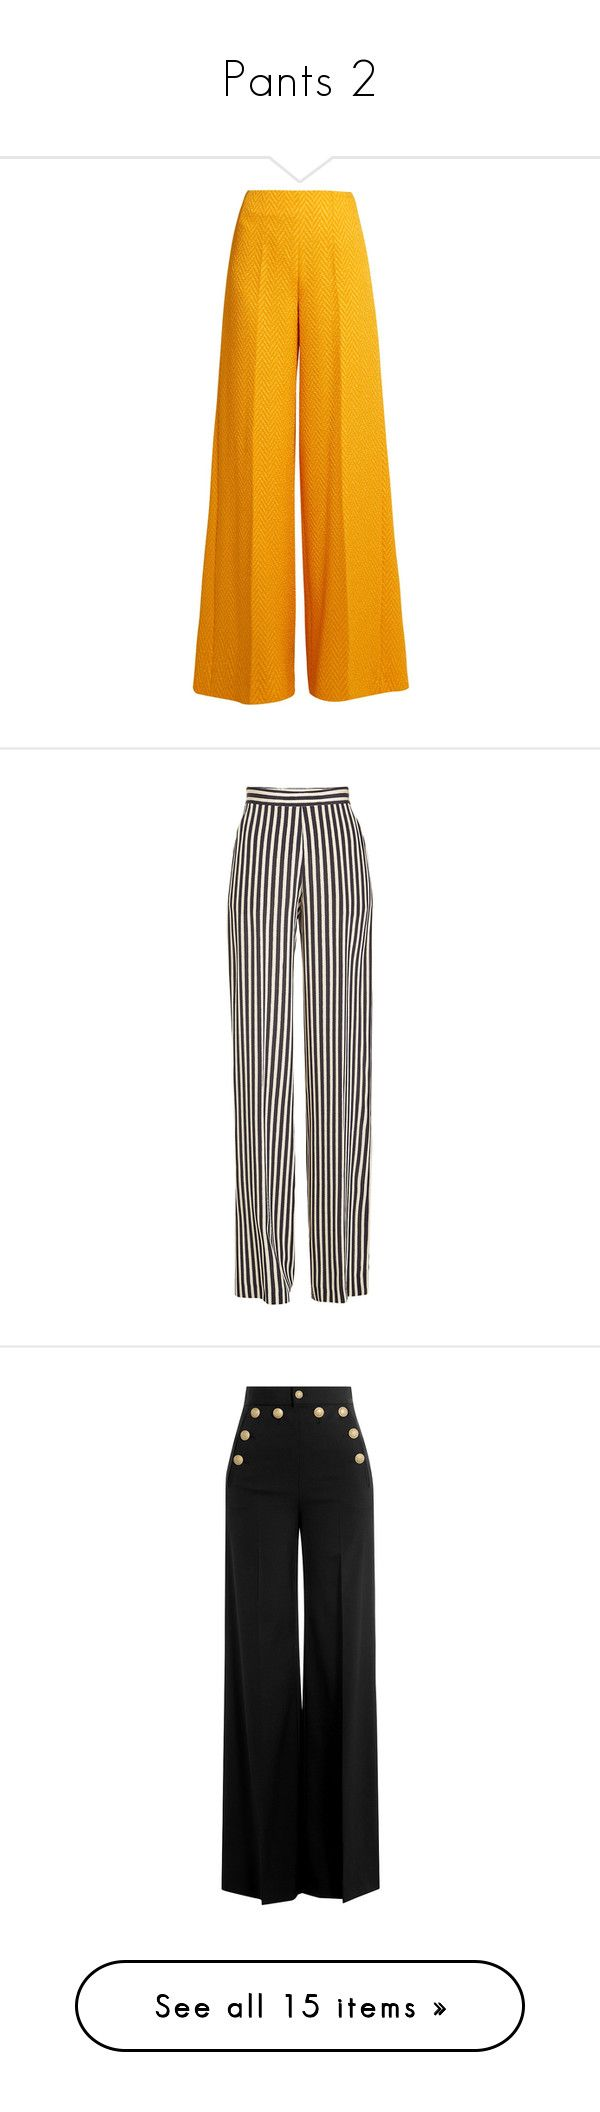 """Pants 2"" by erihiro ❤ liked on Polyvore featuring pants, flared trousers, tailored trousers, chevron pants, wide leg trousers, wide leg pants, bottoms, calças, jeans and trousers"